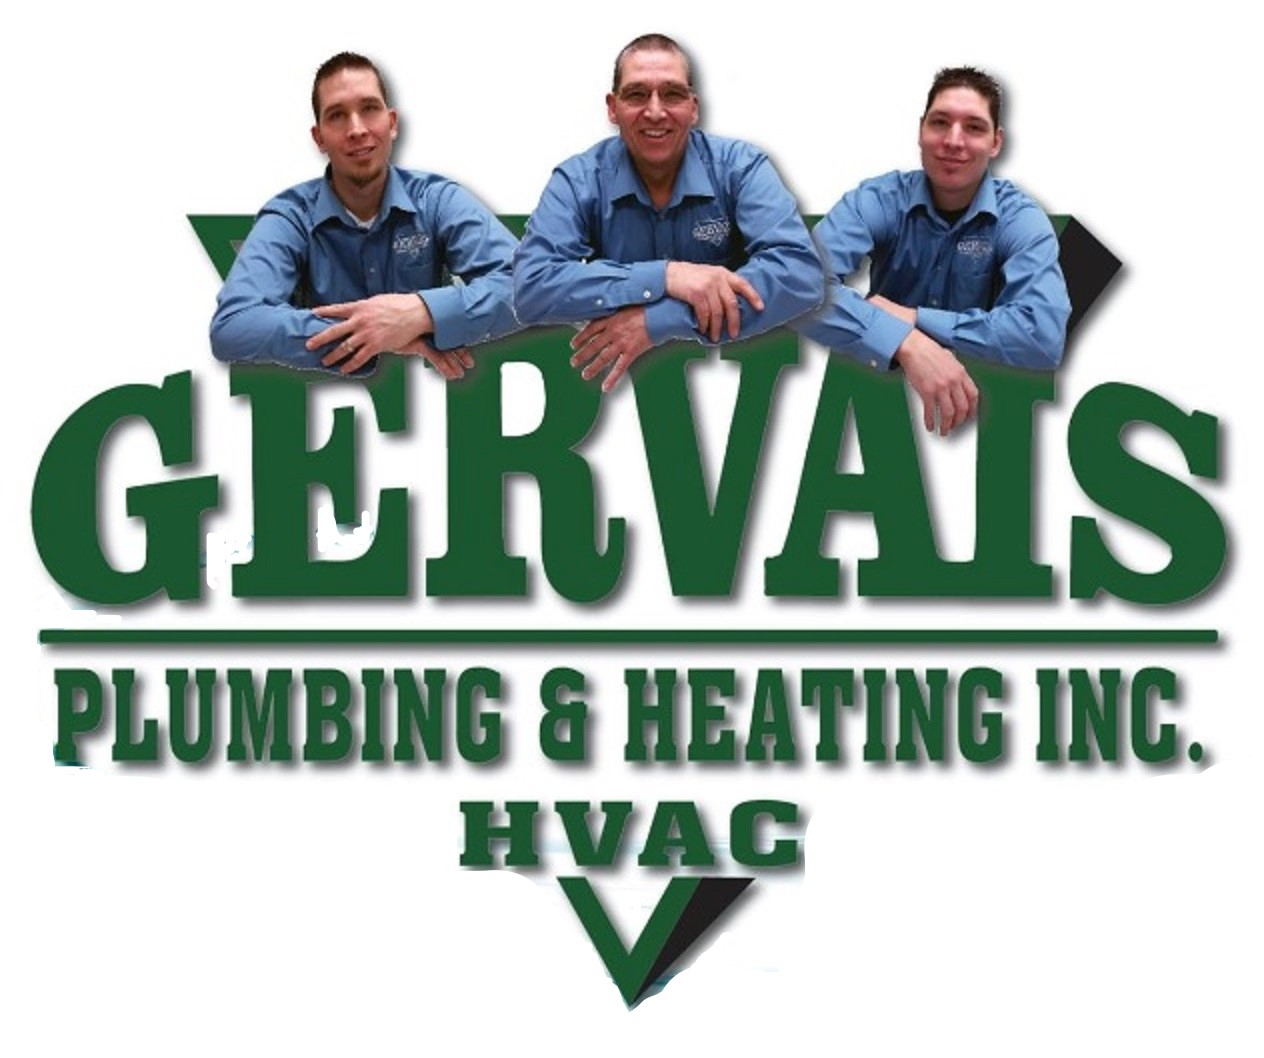 Gervais Plumbing Heating & A/C Specializes in Radiant Heat Installation in Massachusetts.